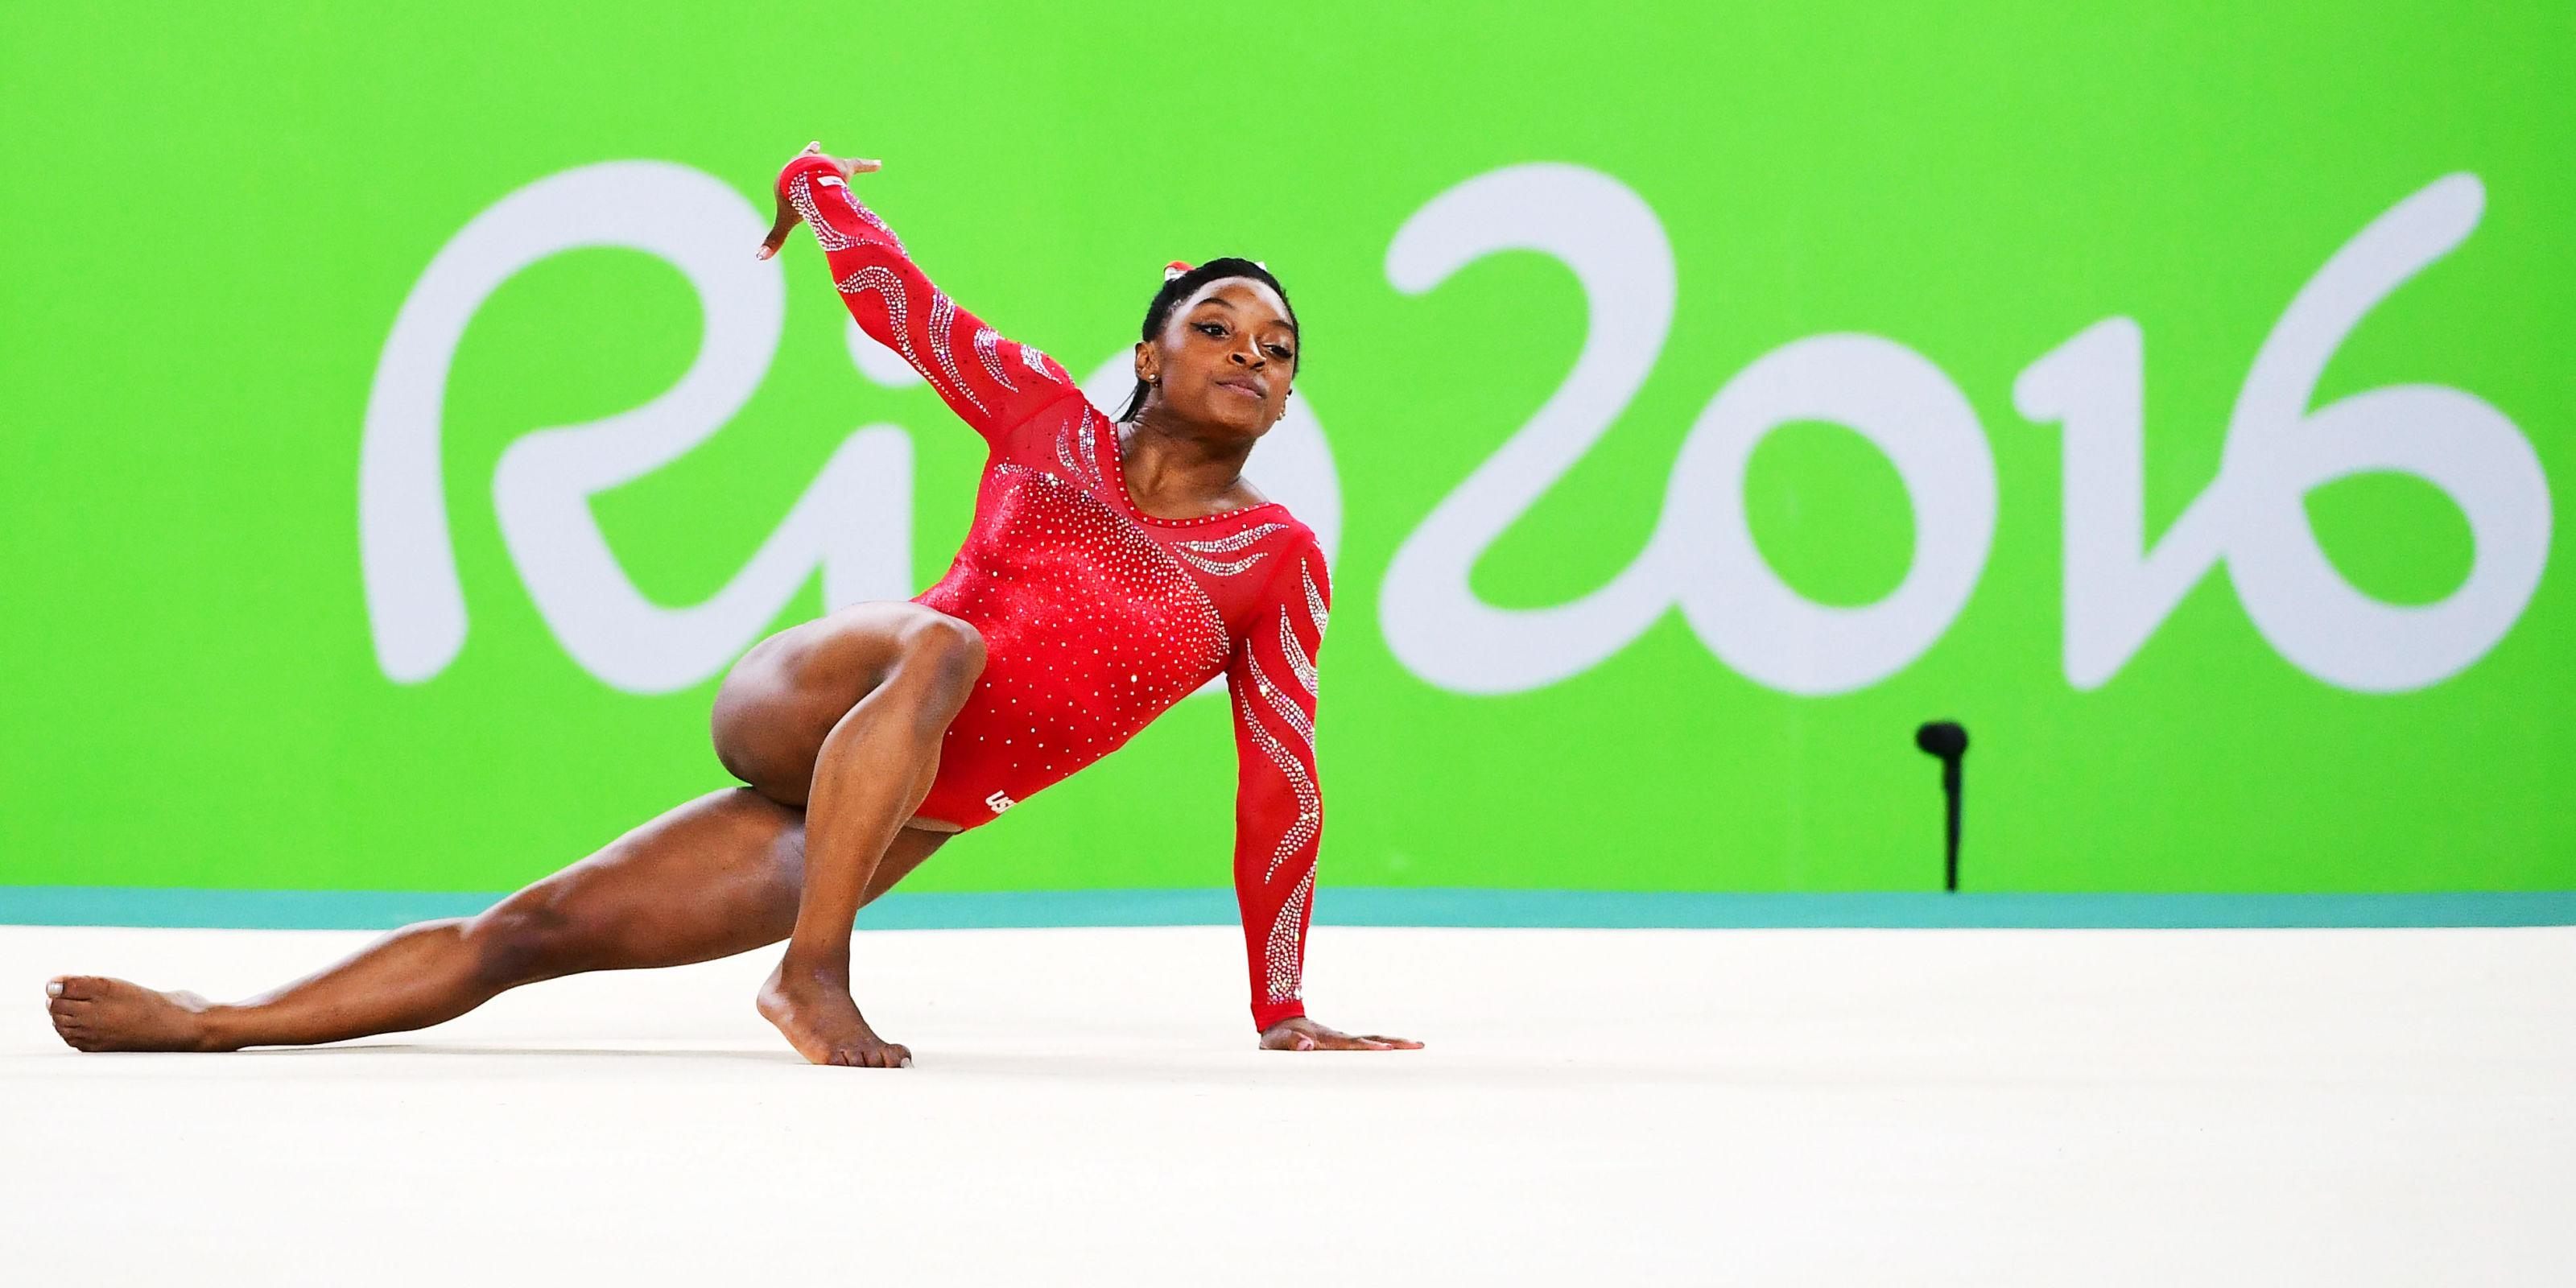 Life in the Olympic Village, According to Simone Biles